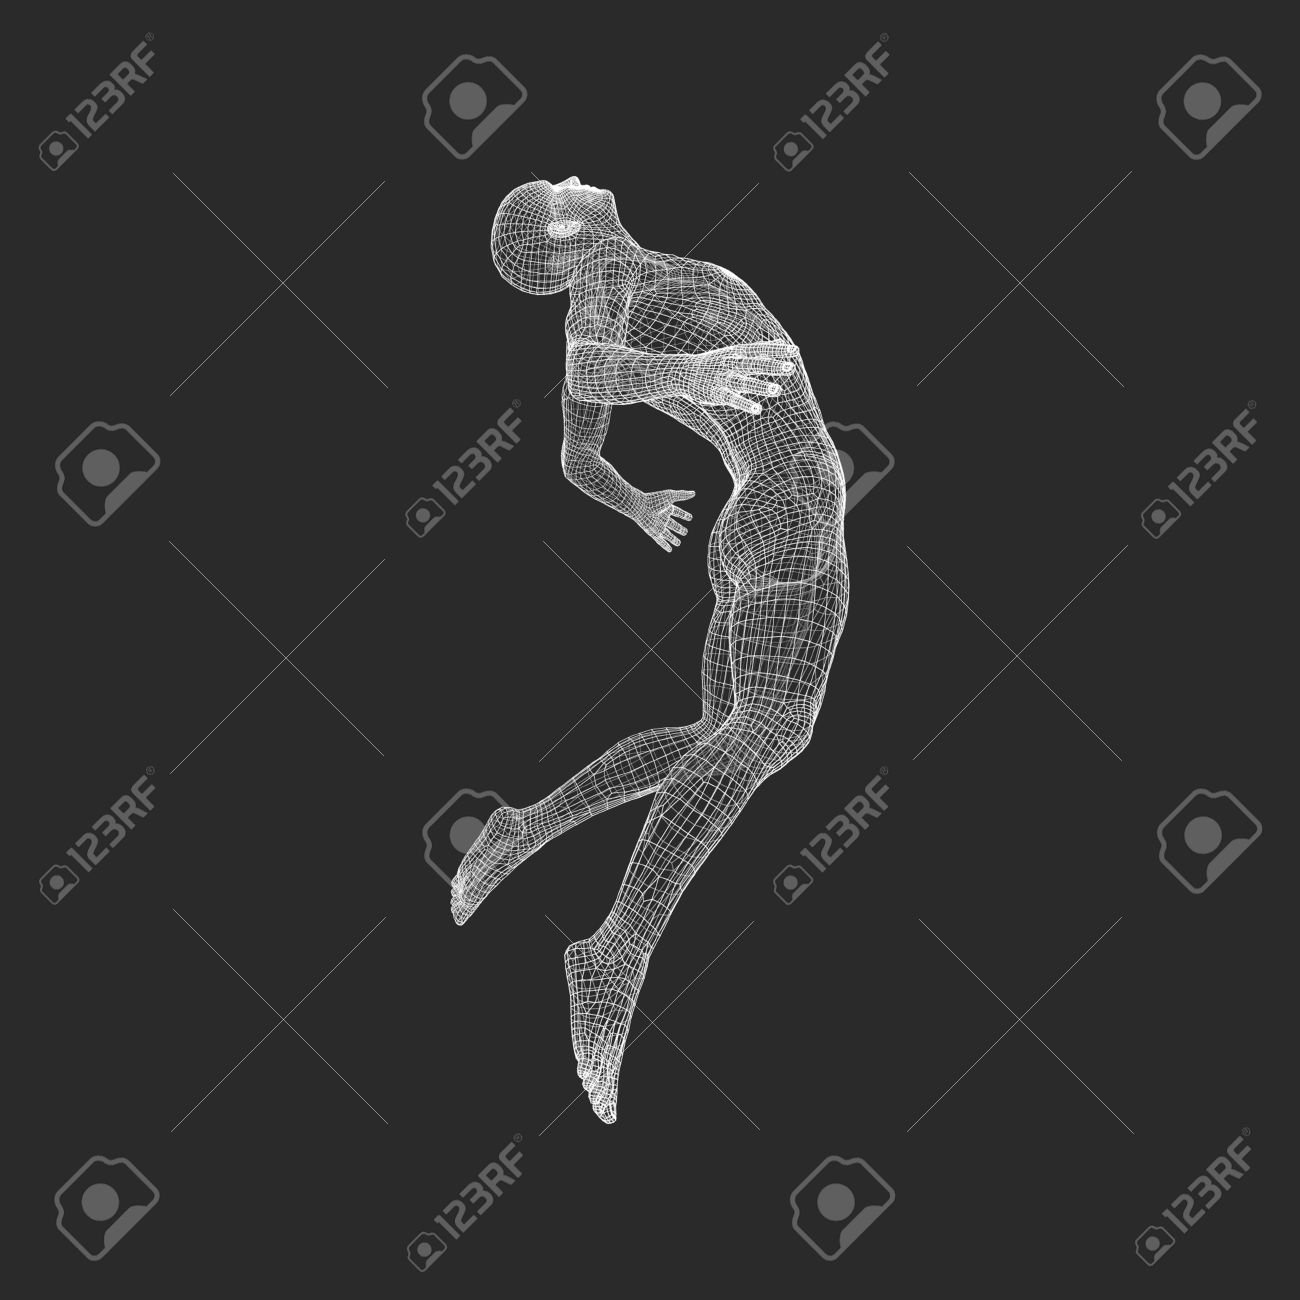 hovering in air man floating in the air 3d model of man human